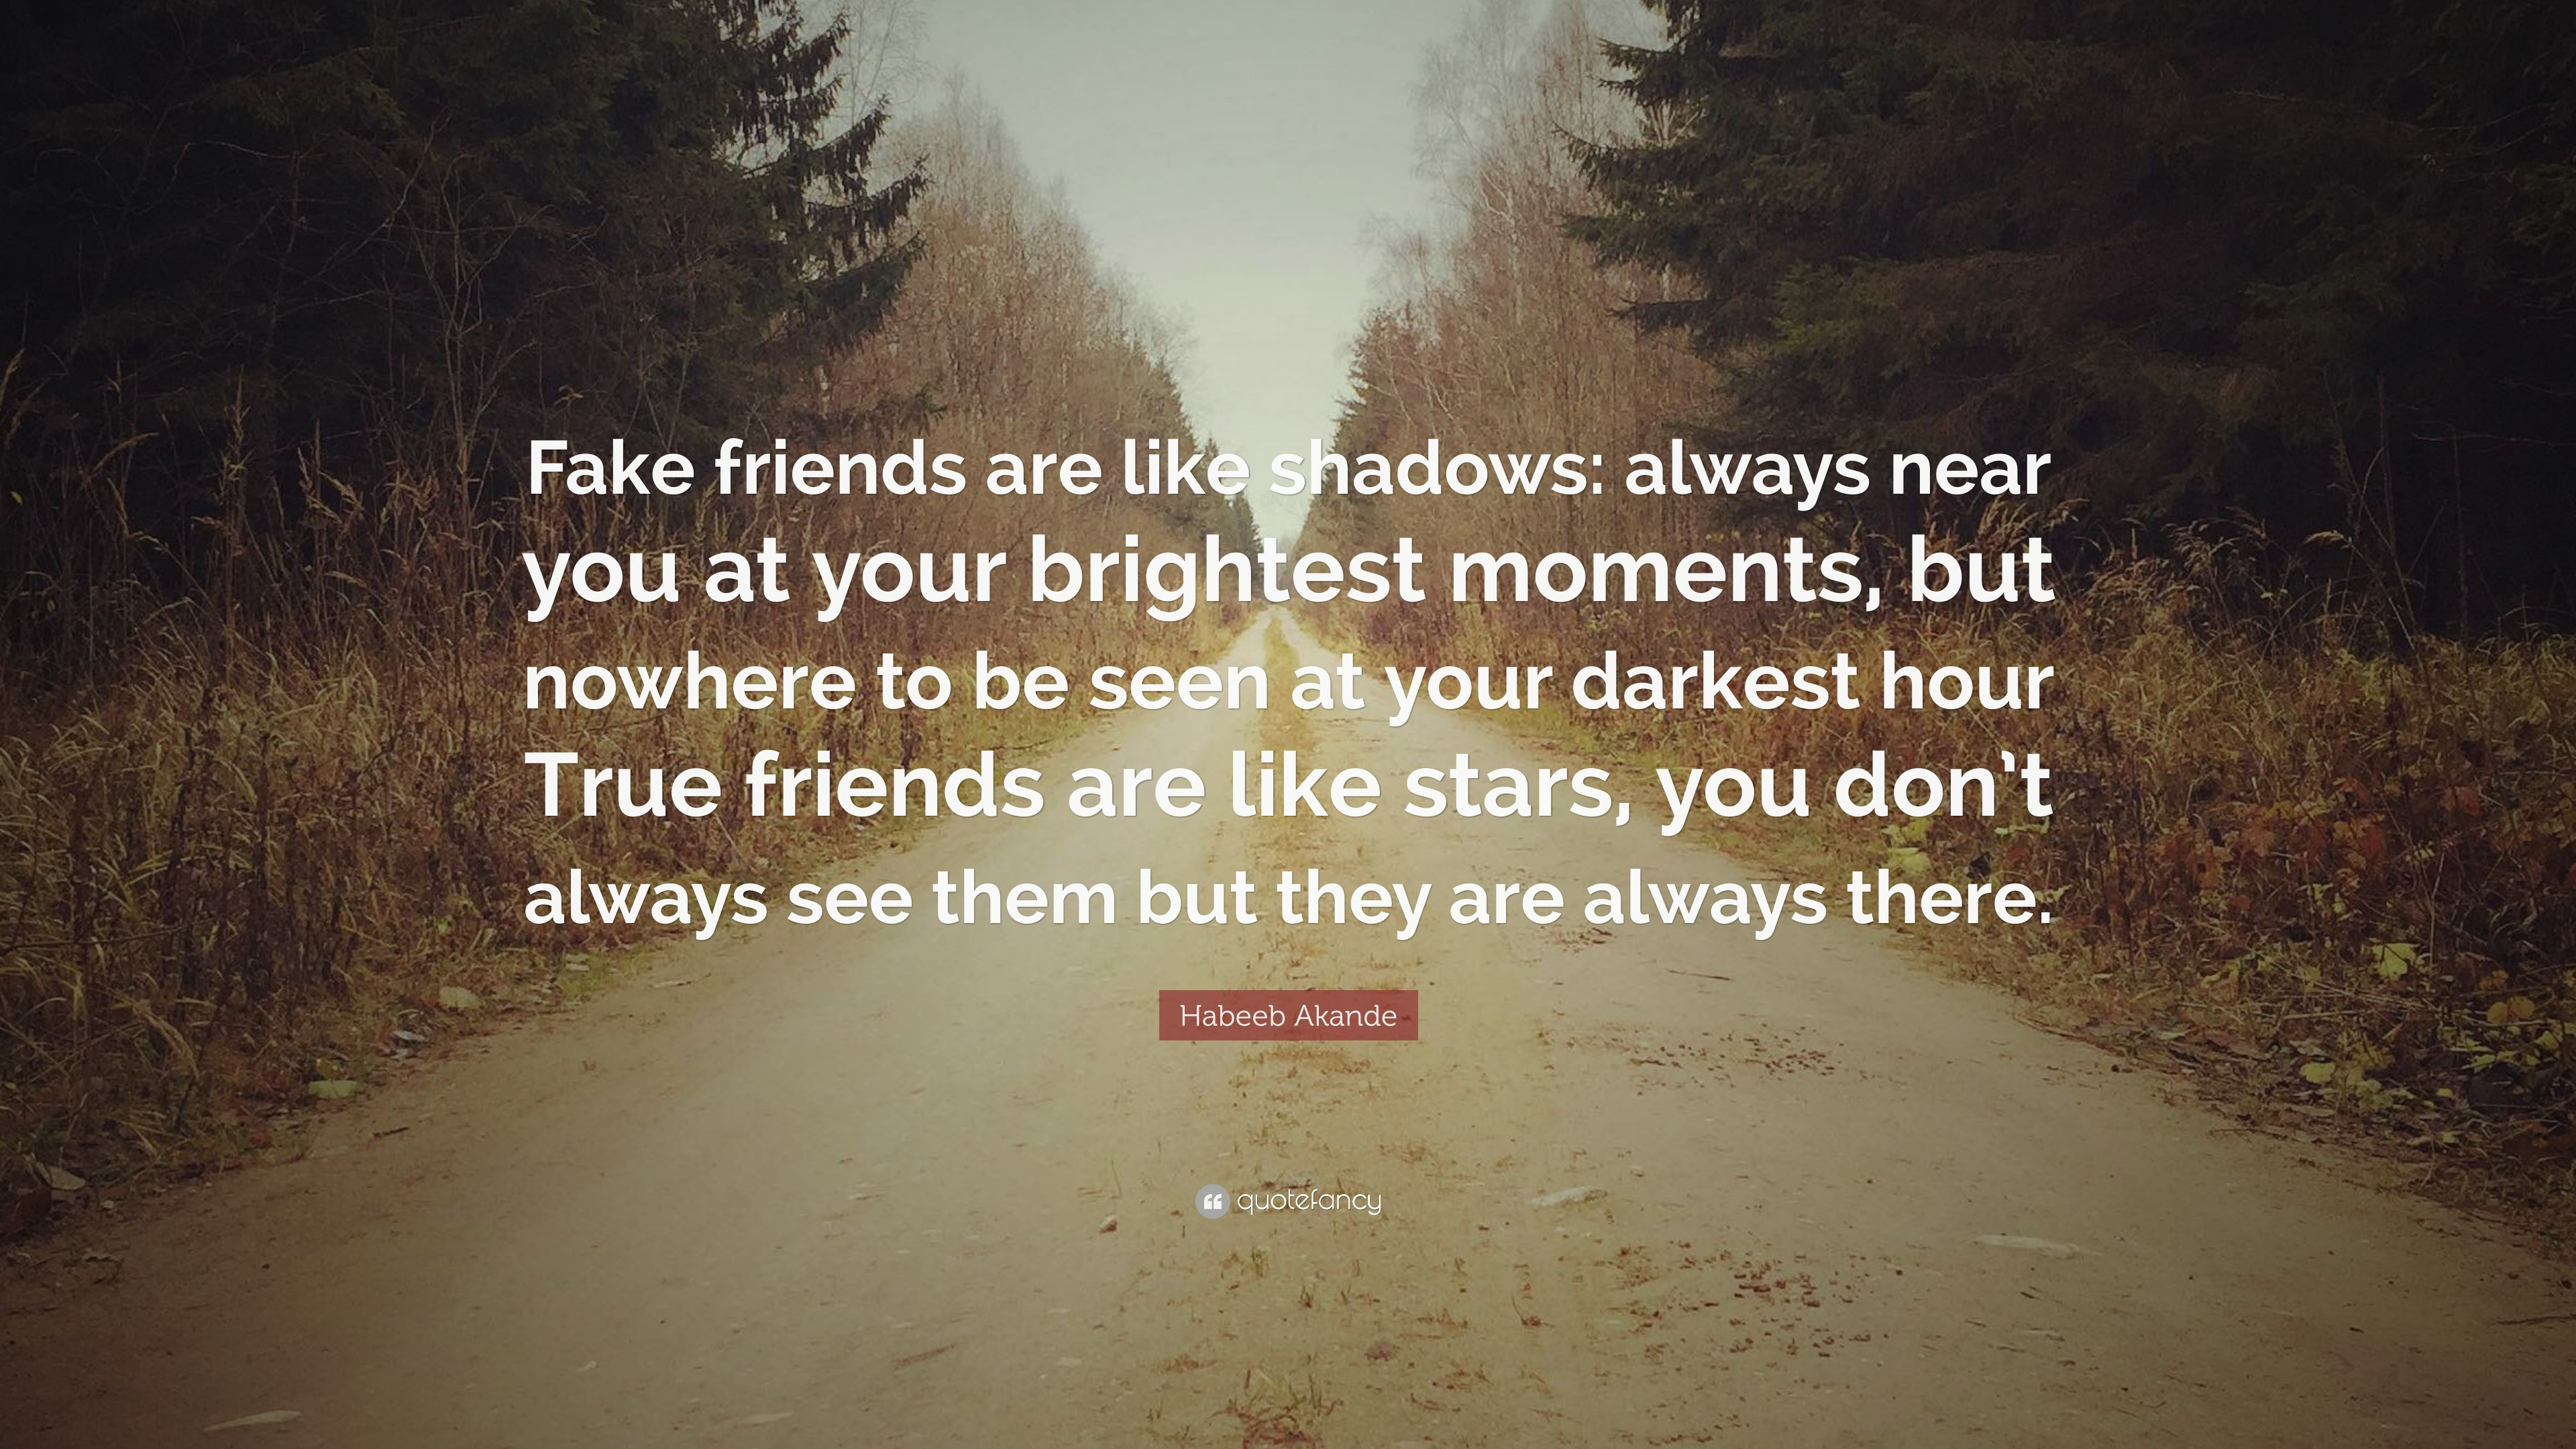 habeeb akande quote fake friends are like shadows always near you at your